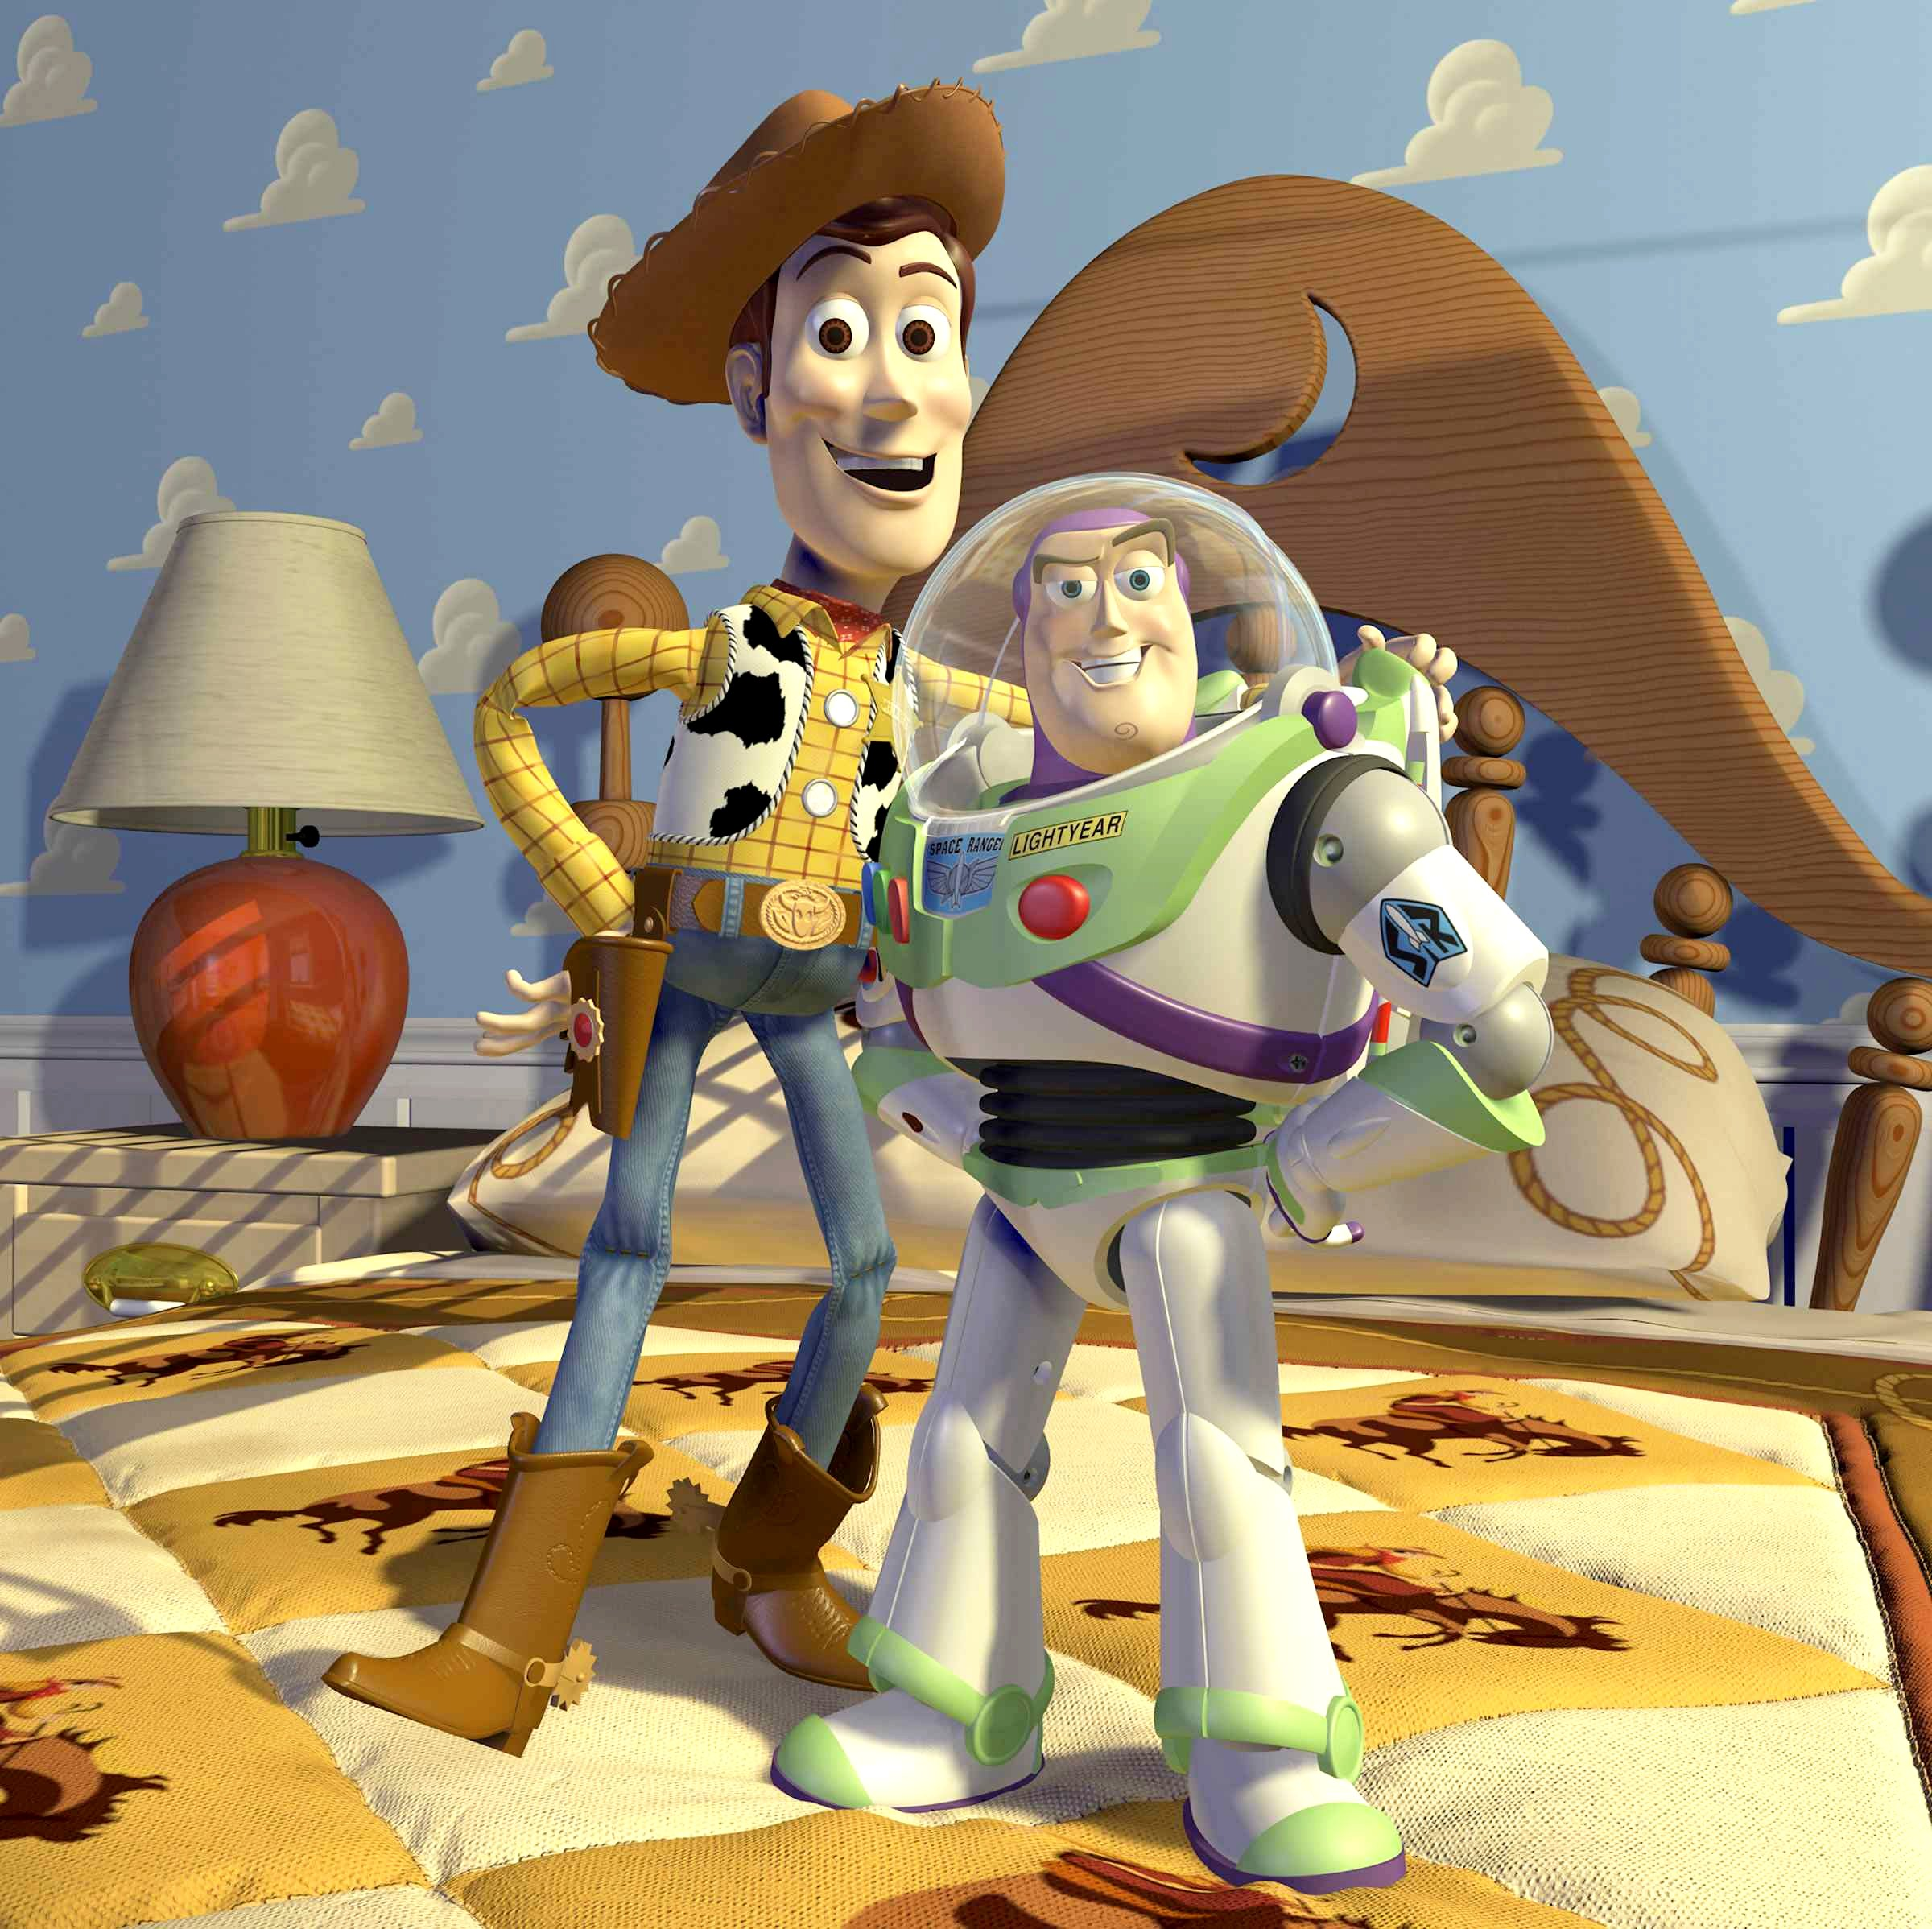 Toy Story 3 Woody and Buzz Wallpaper, Desktop, HD, Free ...